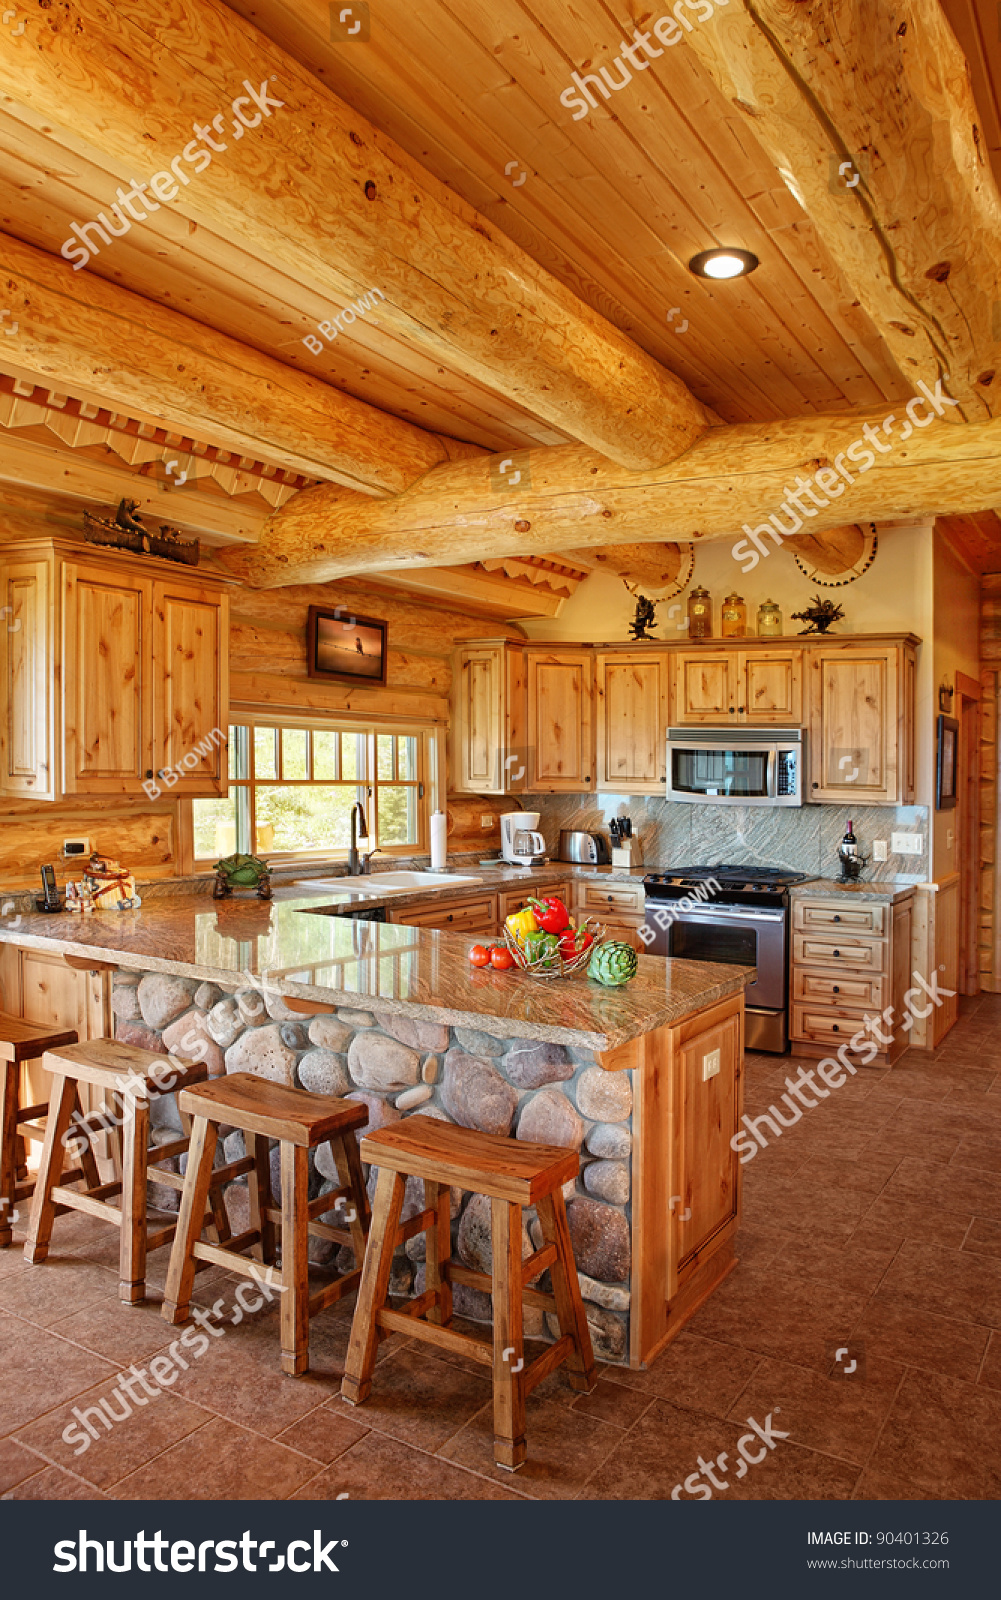 Bdg Style Idaho Project Kitchen: The Interior Of A Modern Log Cabin Stock Photo 90401326 : Shutterstock